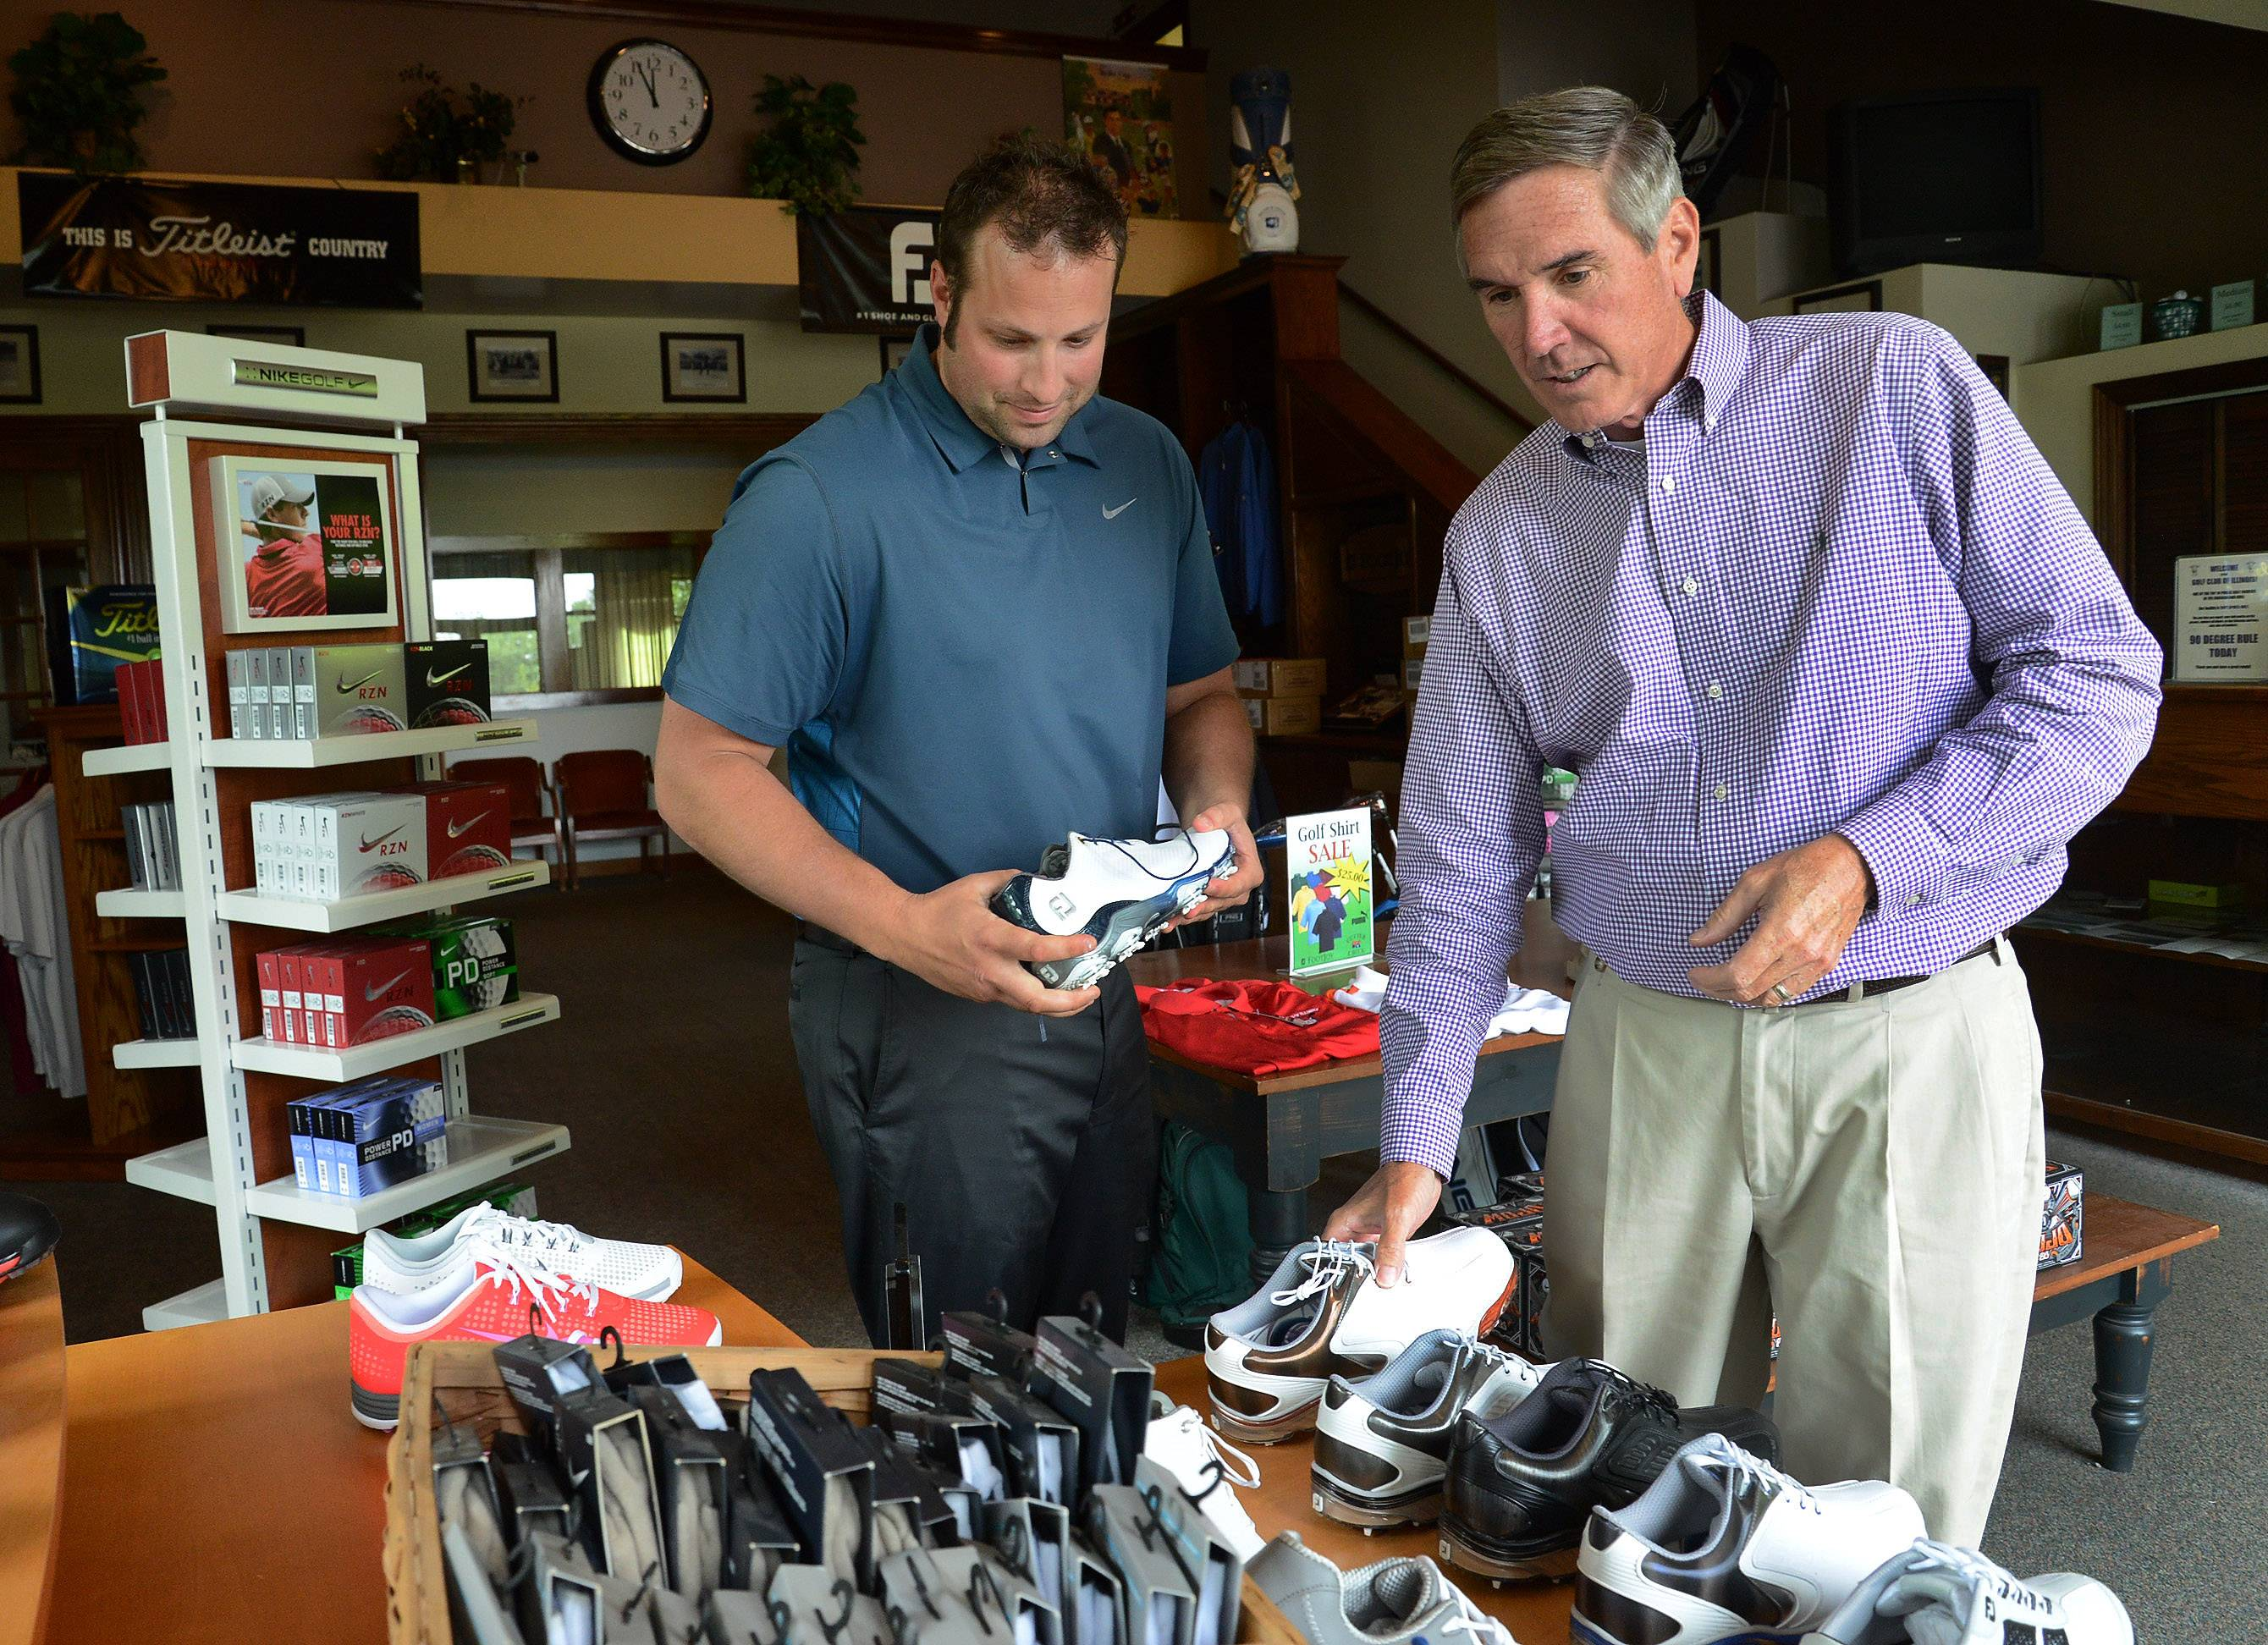 New Illinois Republican Party chairman and Cook County Commissioner Tim Schneider visits the pro shop with Assistant General Manager Robert Lemke at the Golf Club of Illinois, which Schneider owns.